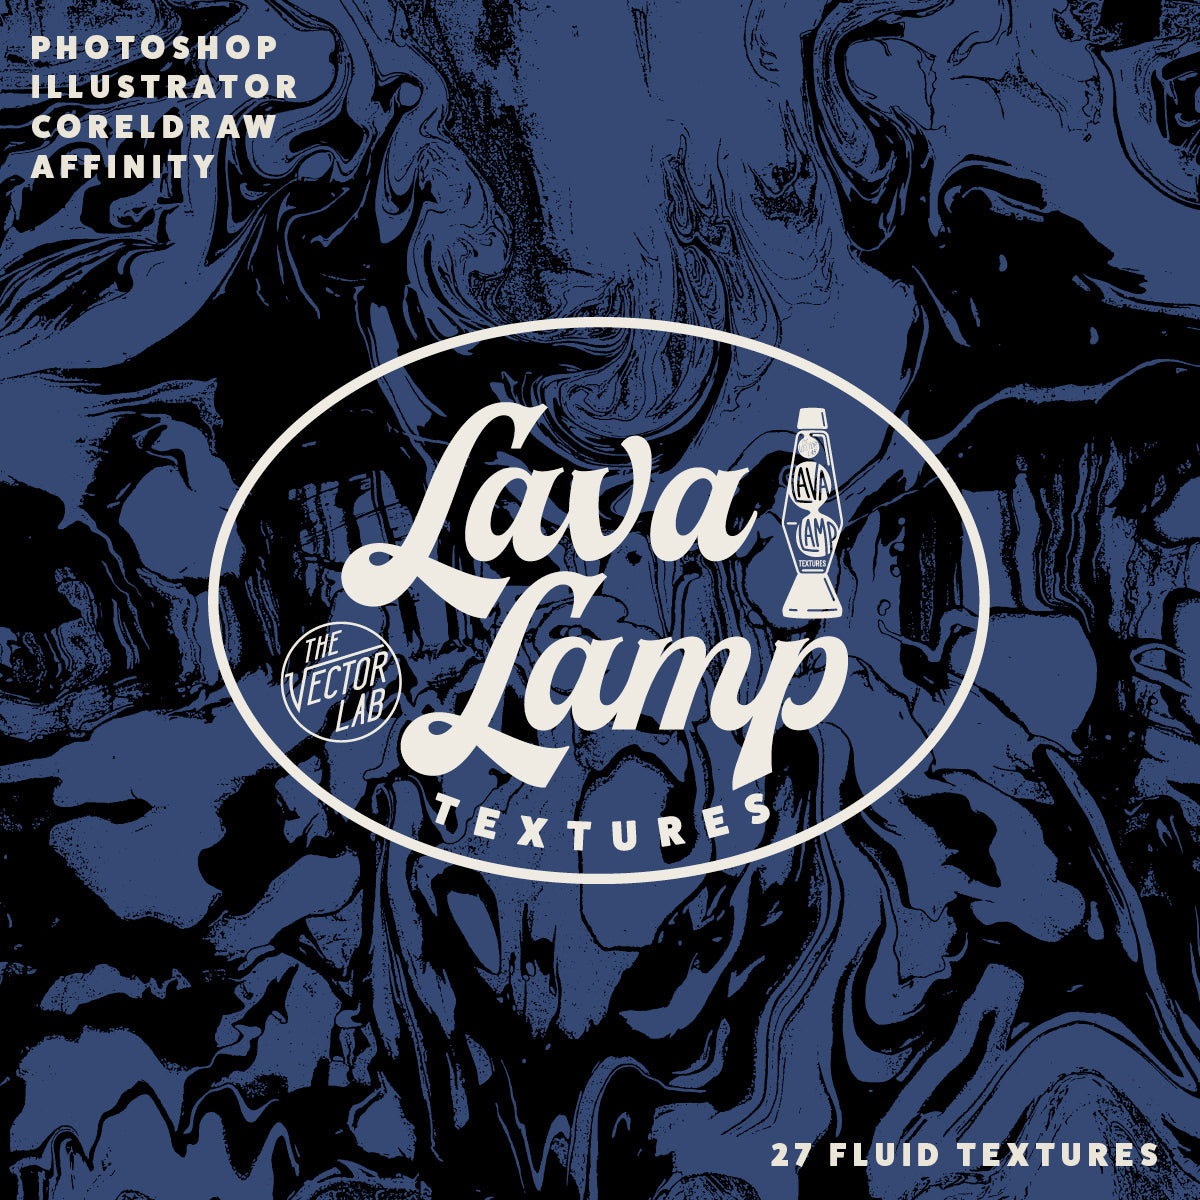 Lava Lamp - Liquid Textures for Photoshop and Illustrator